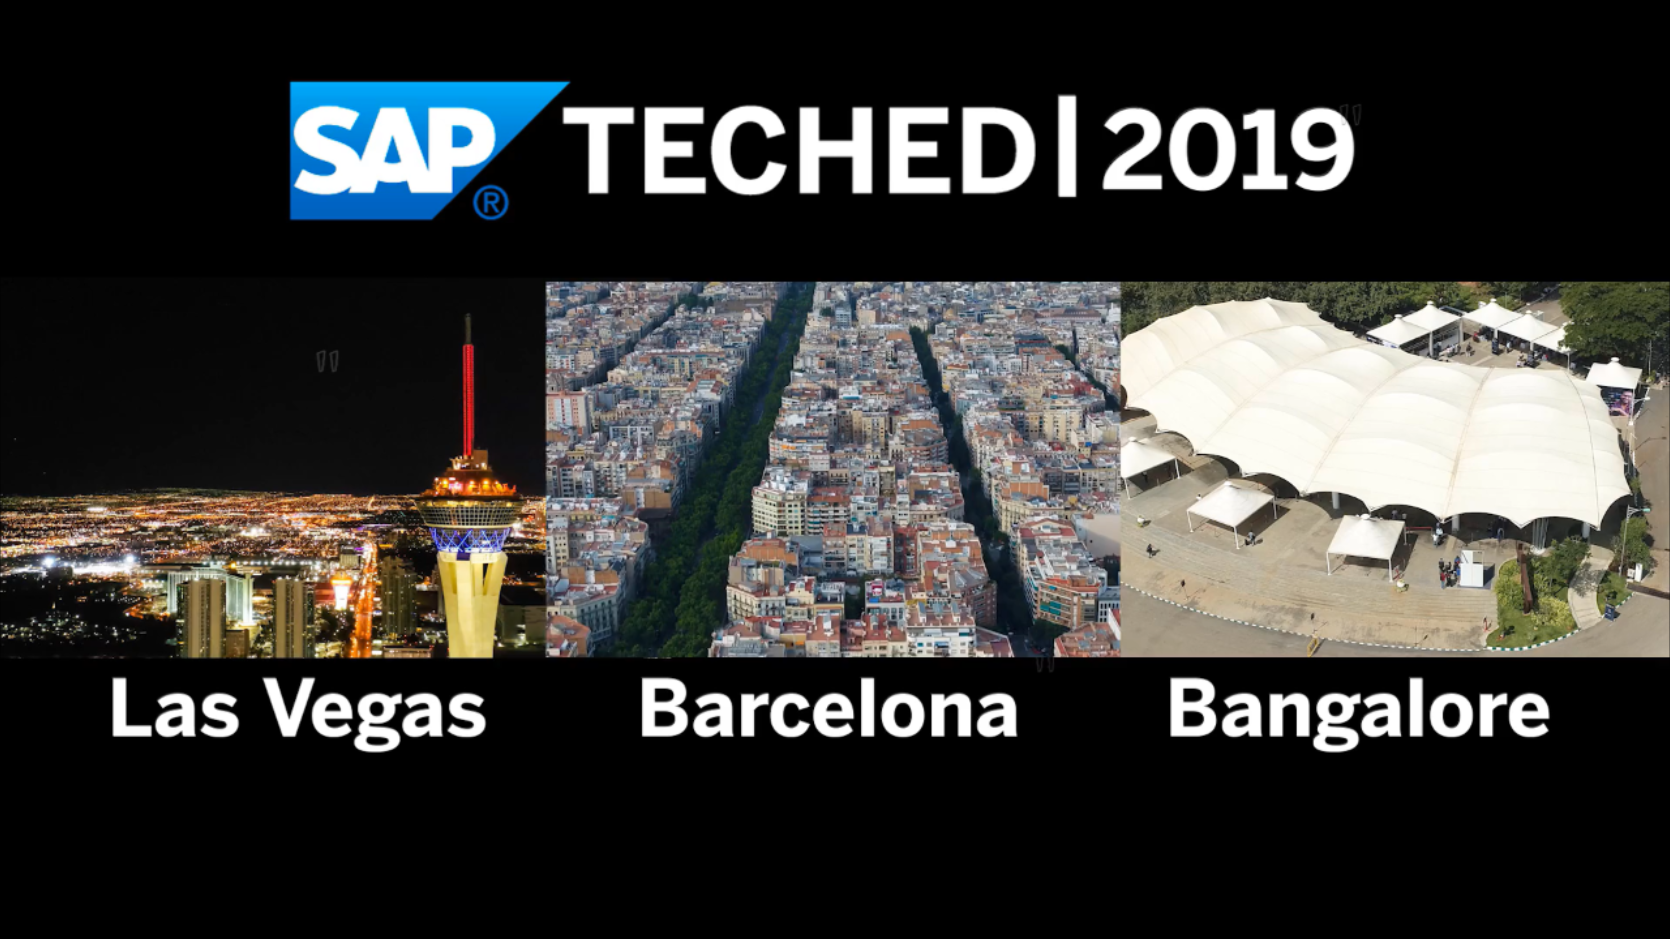 SAP TechEd in 2019 - Highlights <br>Watch the great moments from all 3 events.